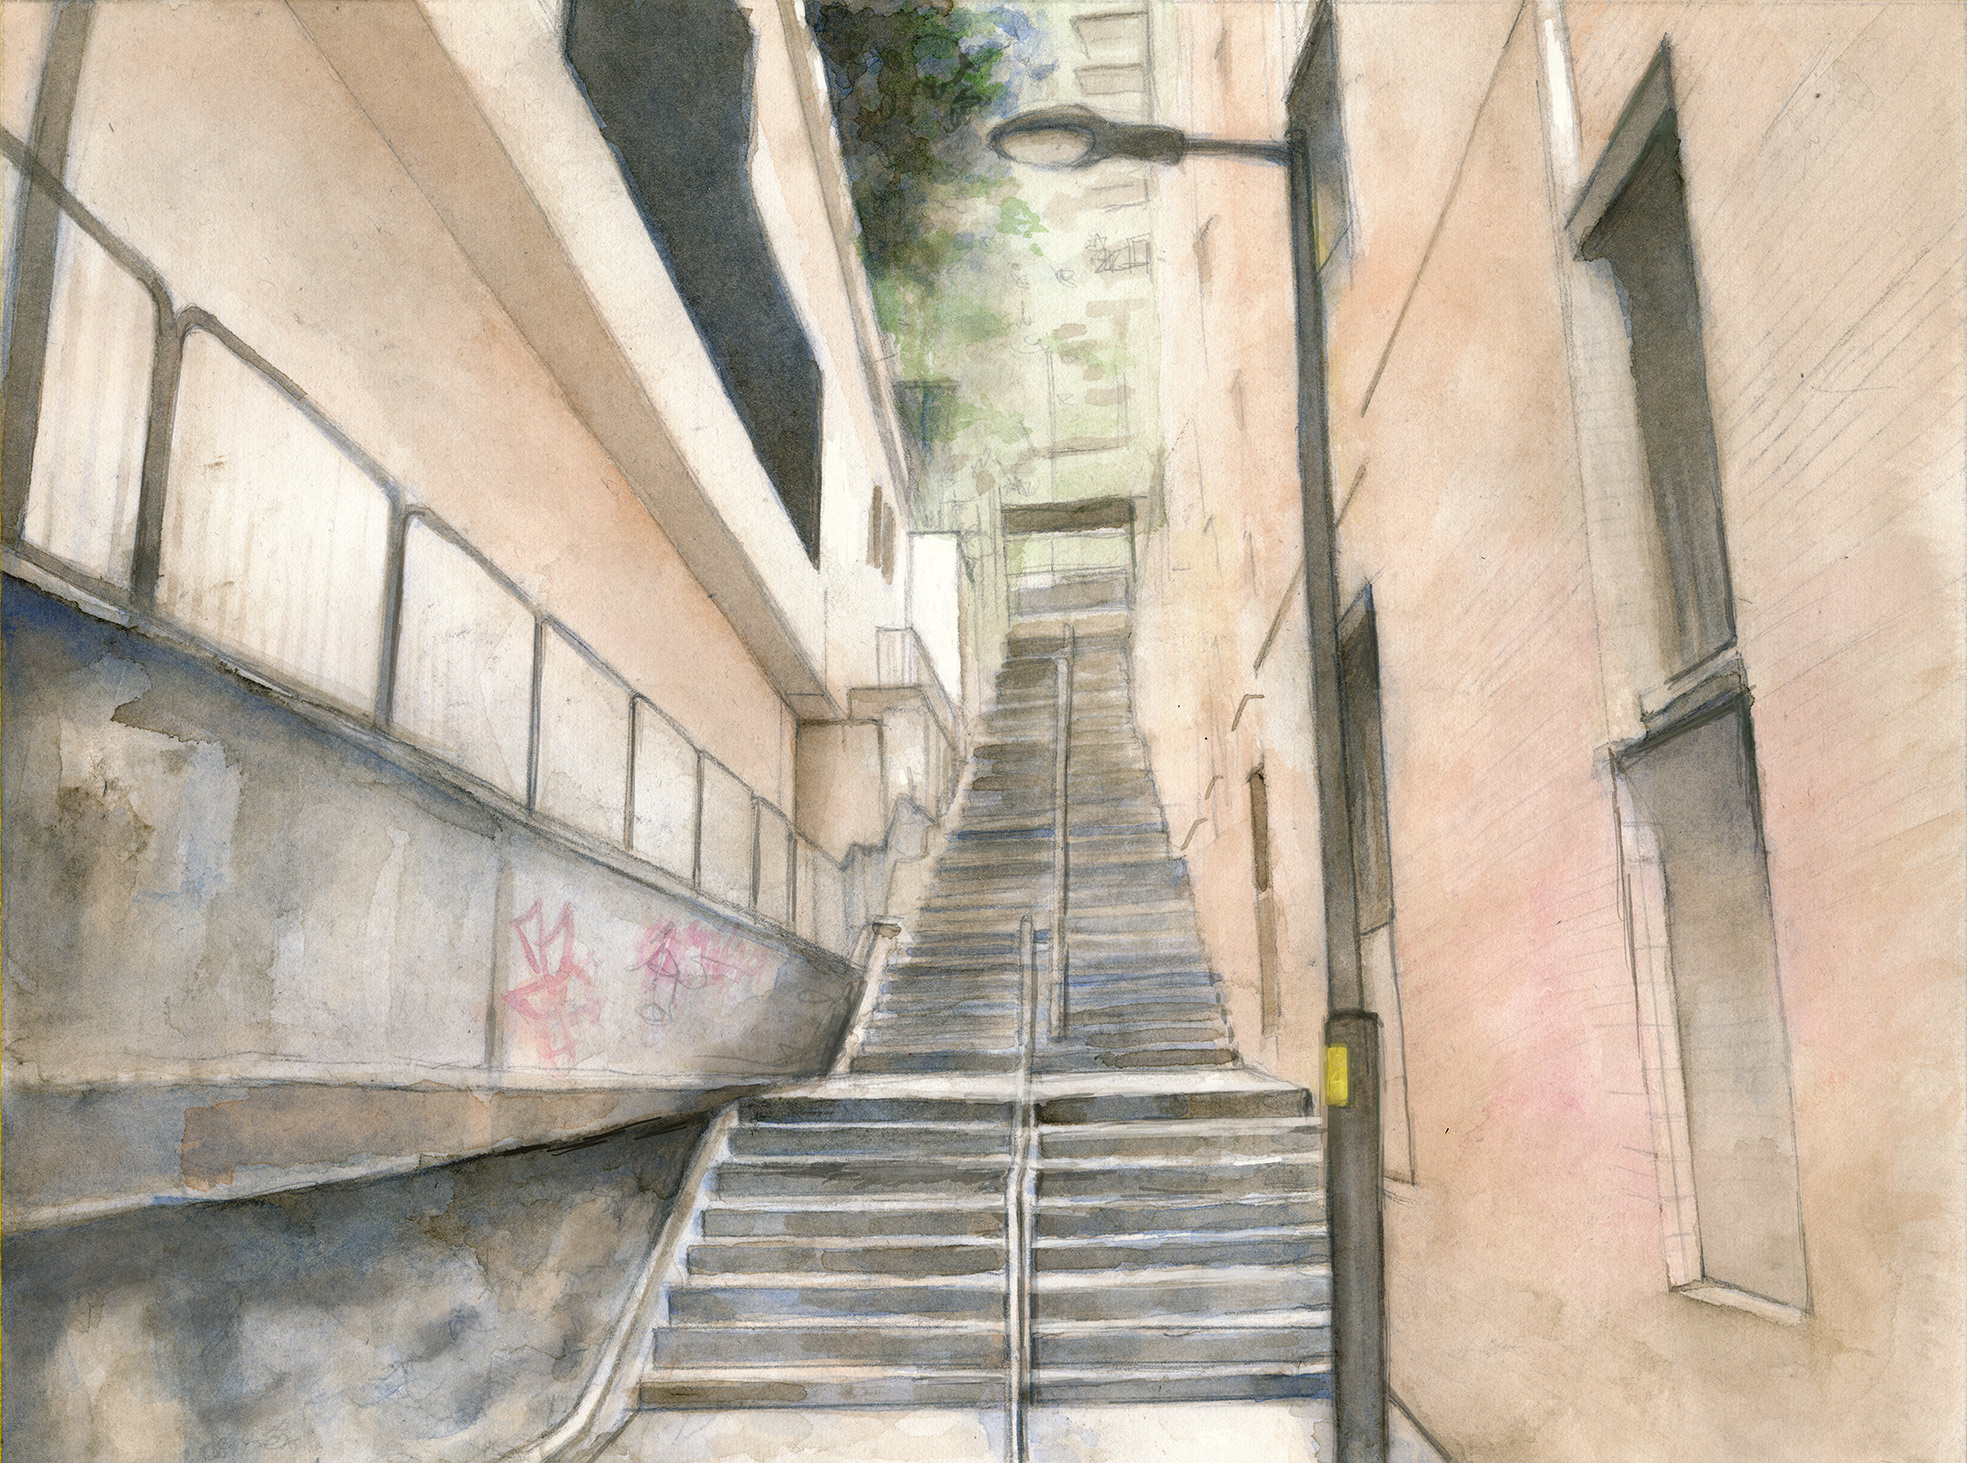 watercolor of stairway in Sai Ying Pun, Hong Kong